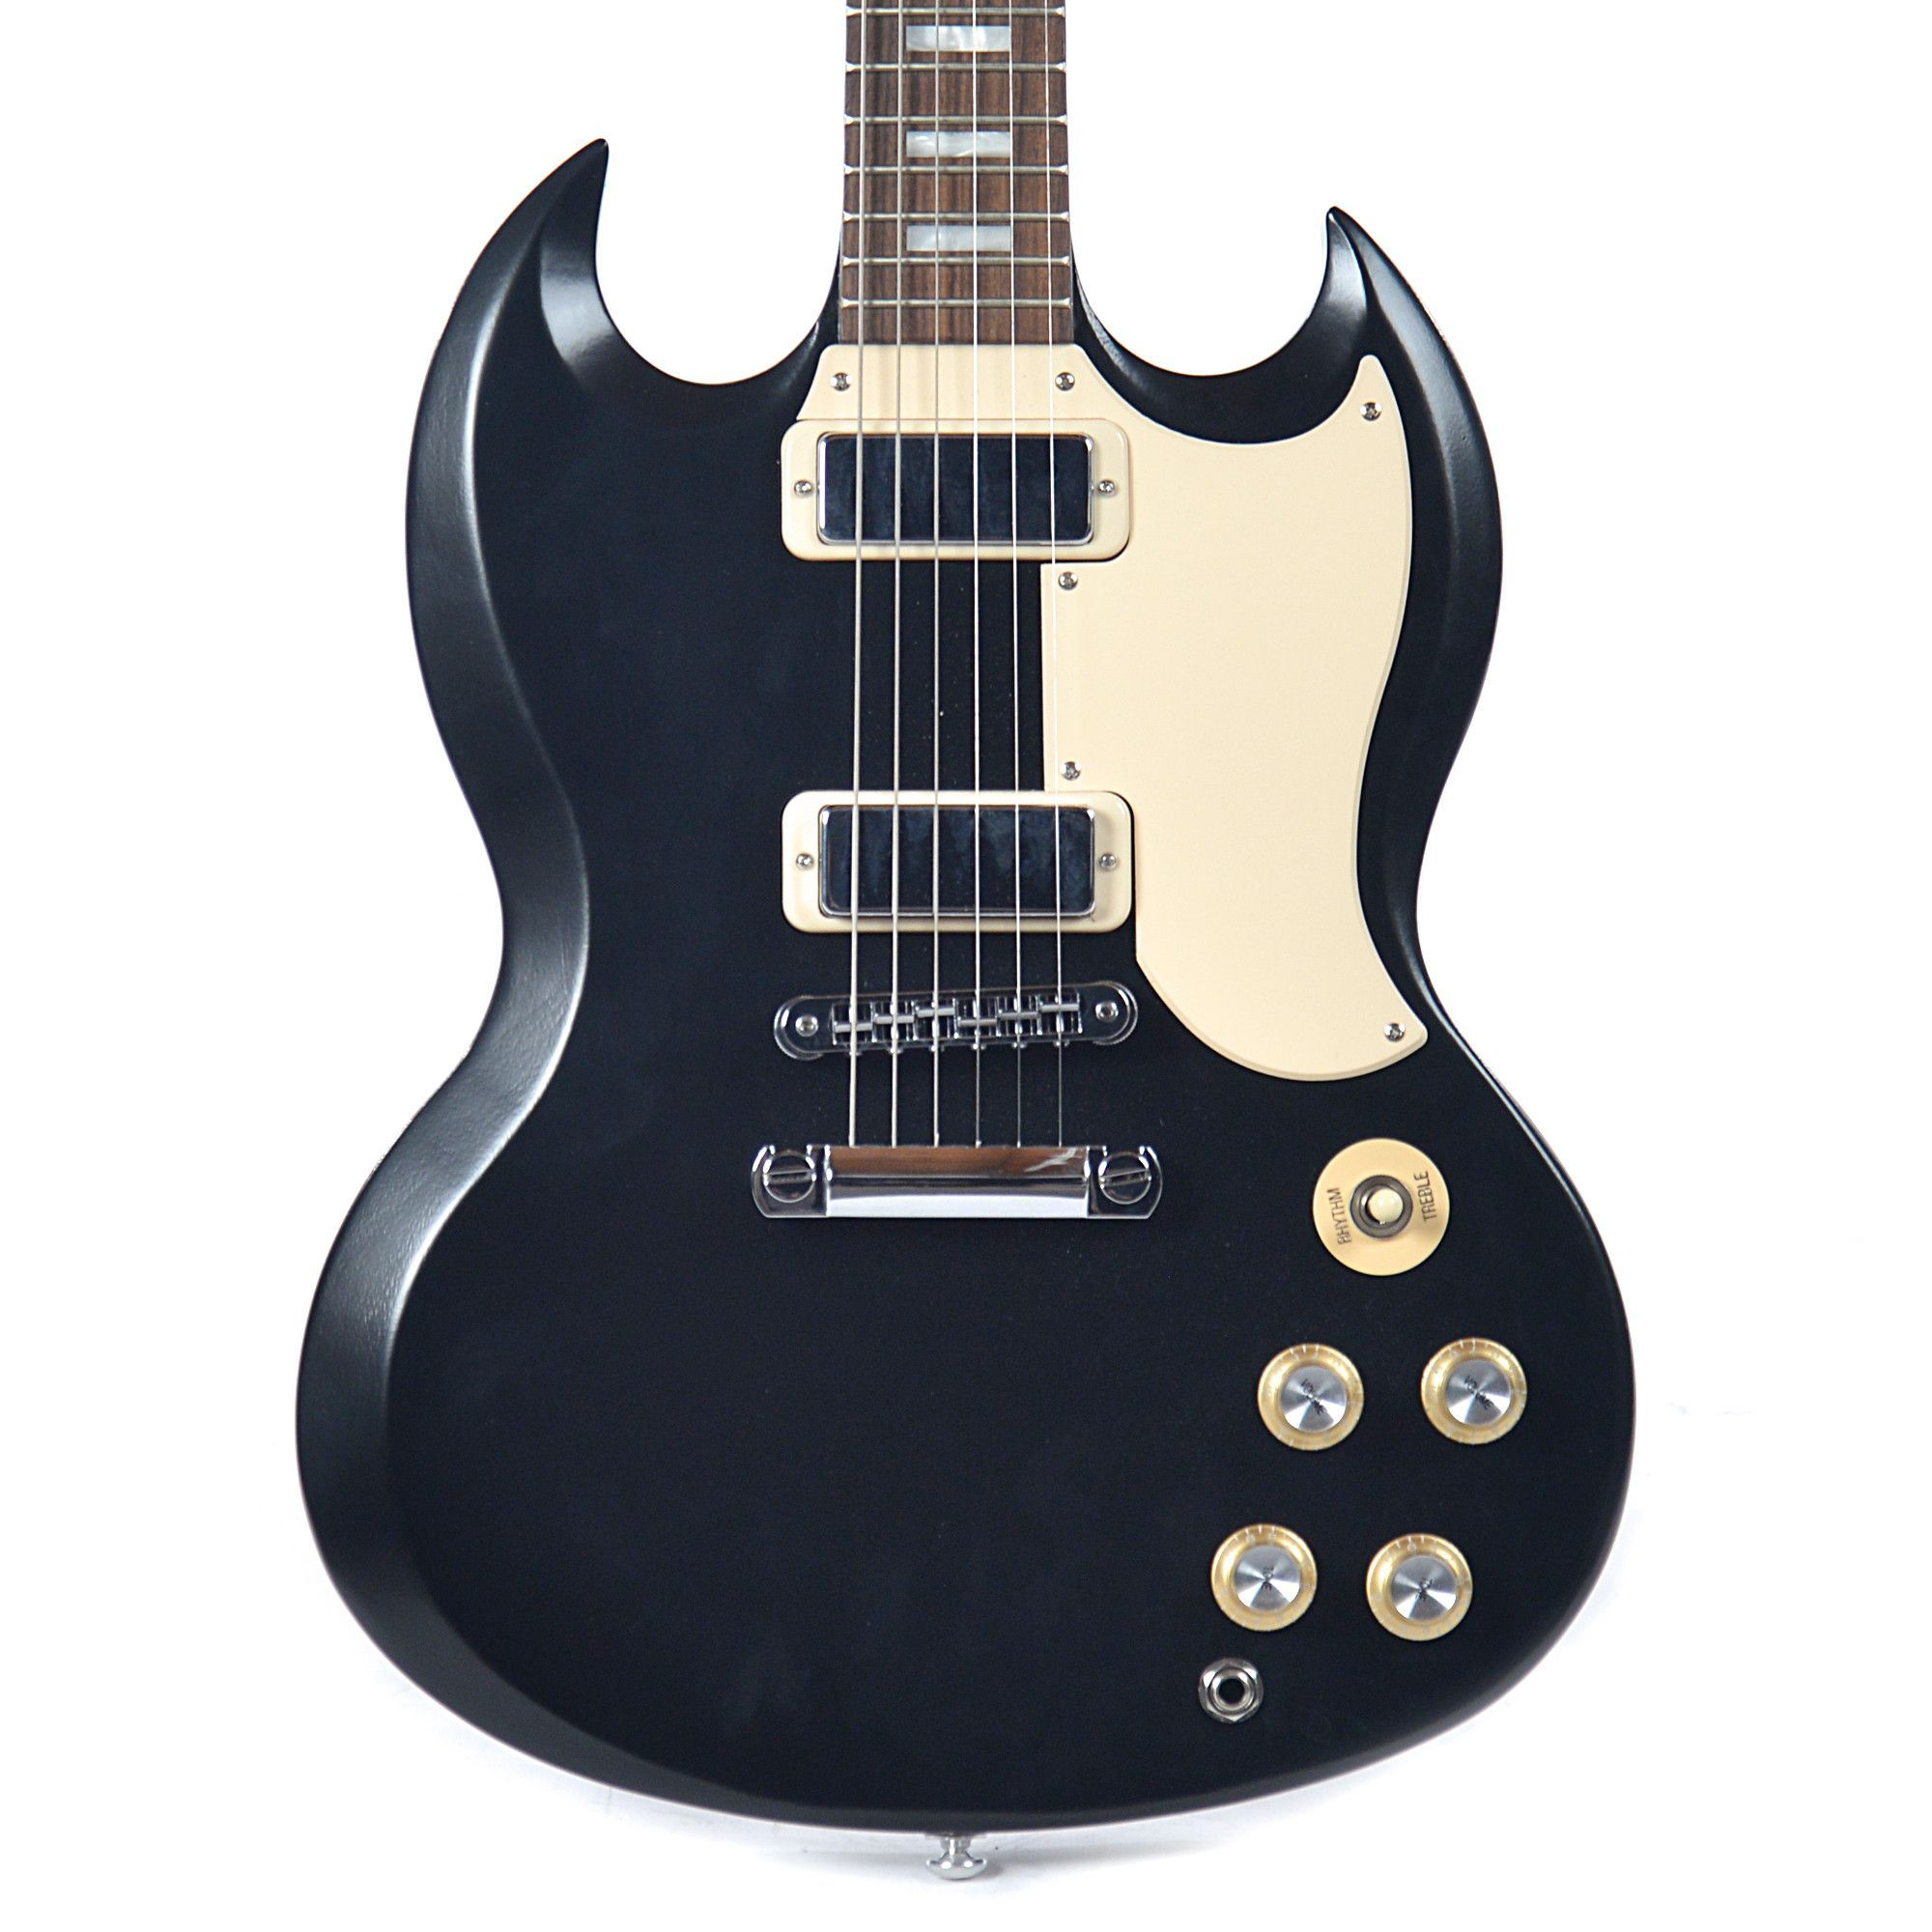 gibson usa sg special faded t satin ebony vintage guitars gibson sg purple  guitar wiring schematics